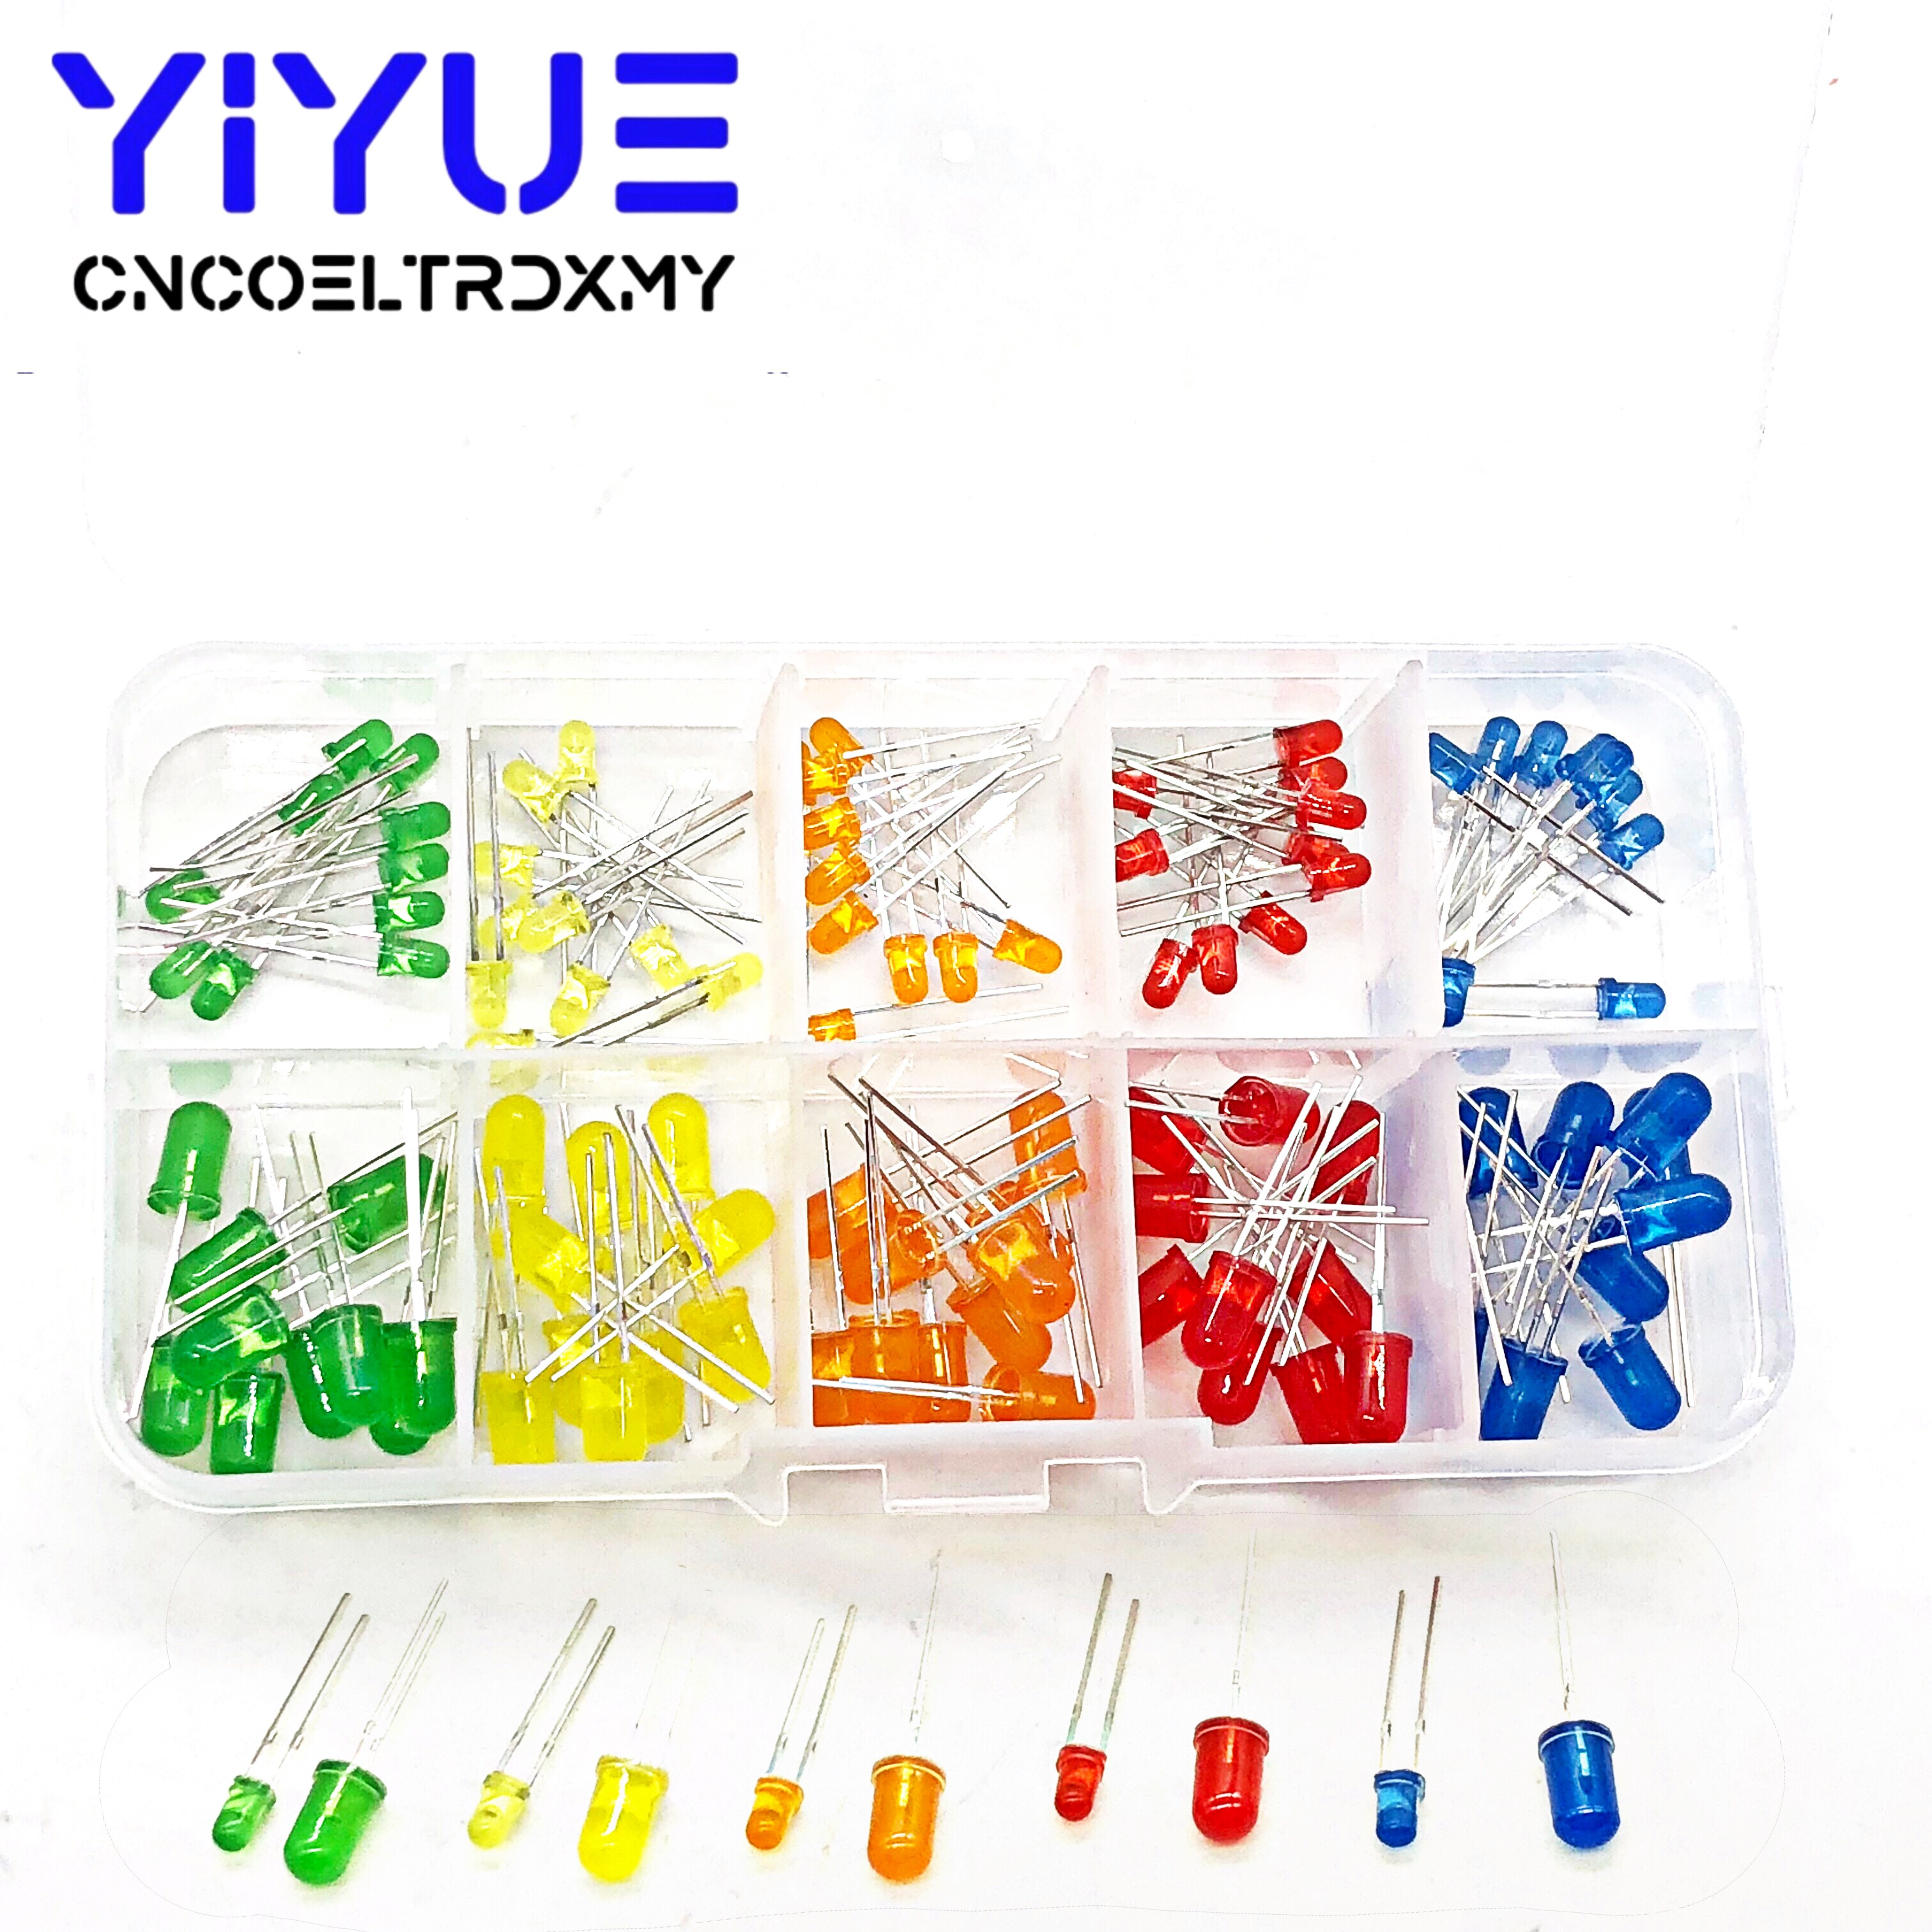 100pcs LED Emitting Diodes Light Kit 5 Colors Round Top 3mm/5mm  Yellow Red Blue Green Orange Assortment Kit For DIY Lighting